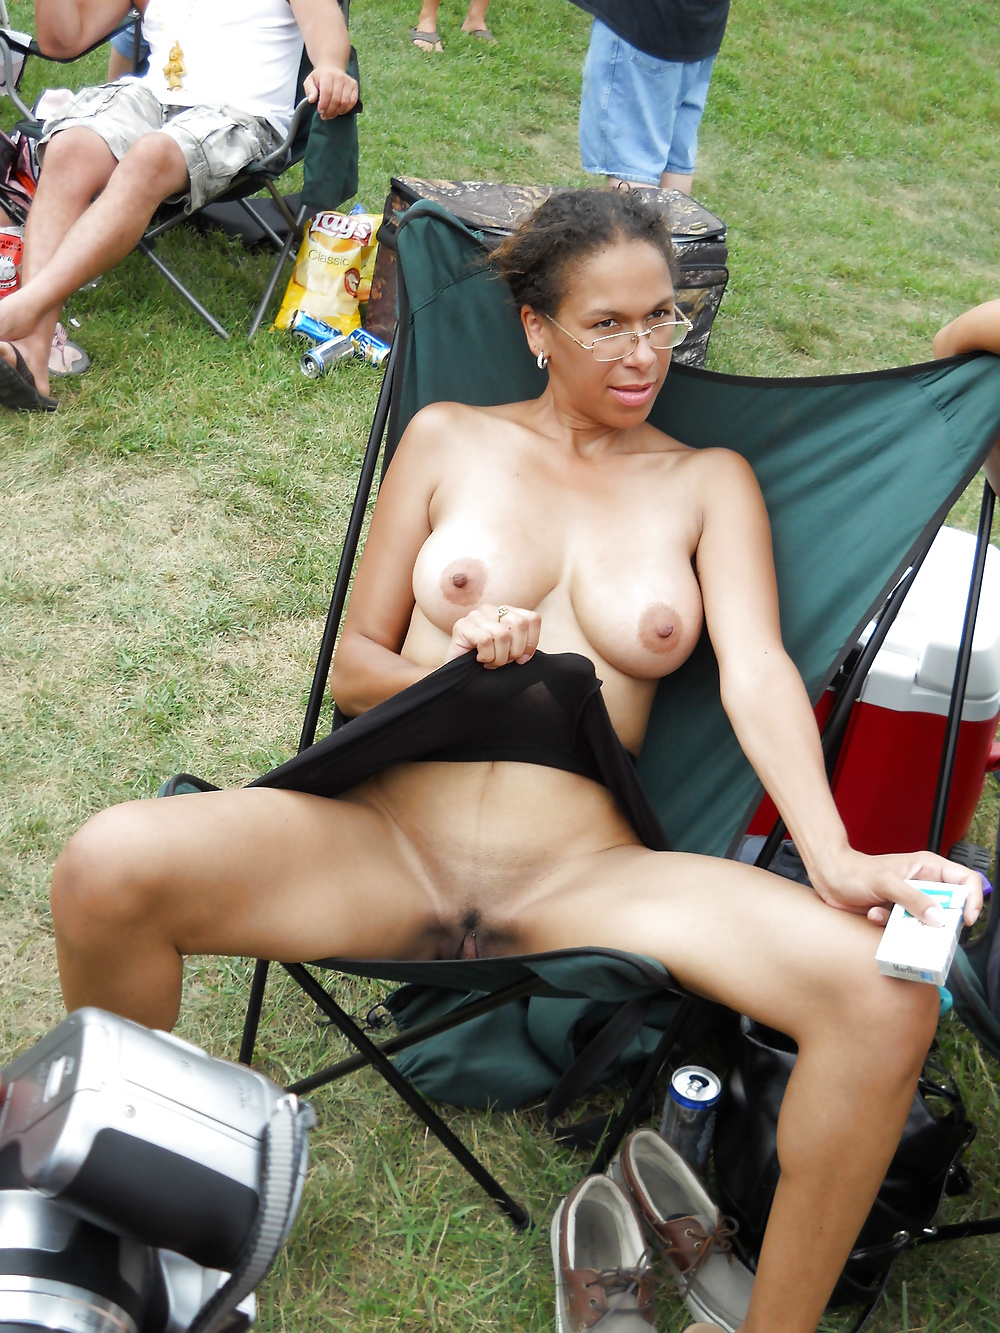 Hot milf in doggy style position